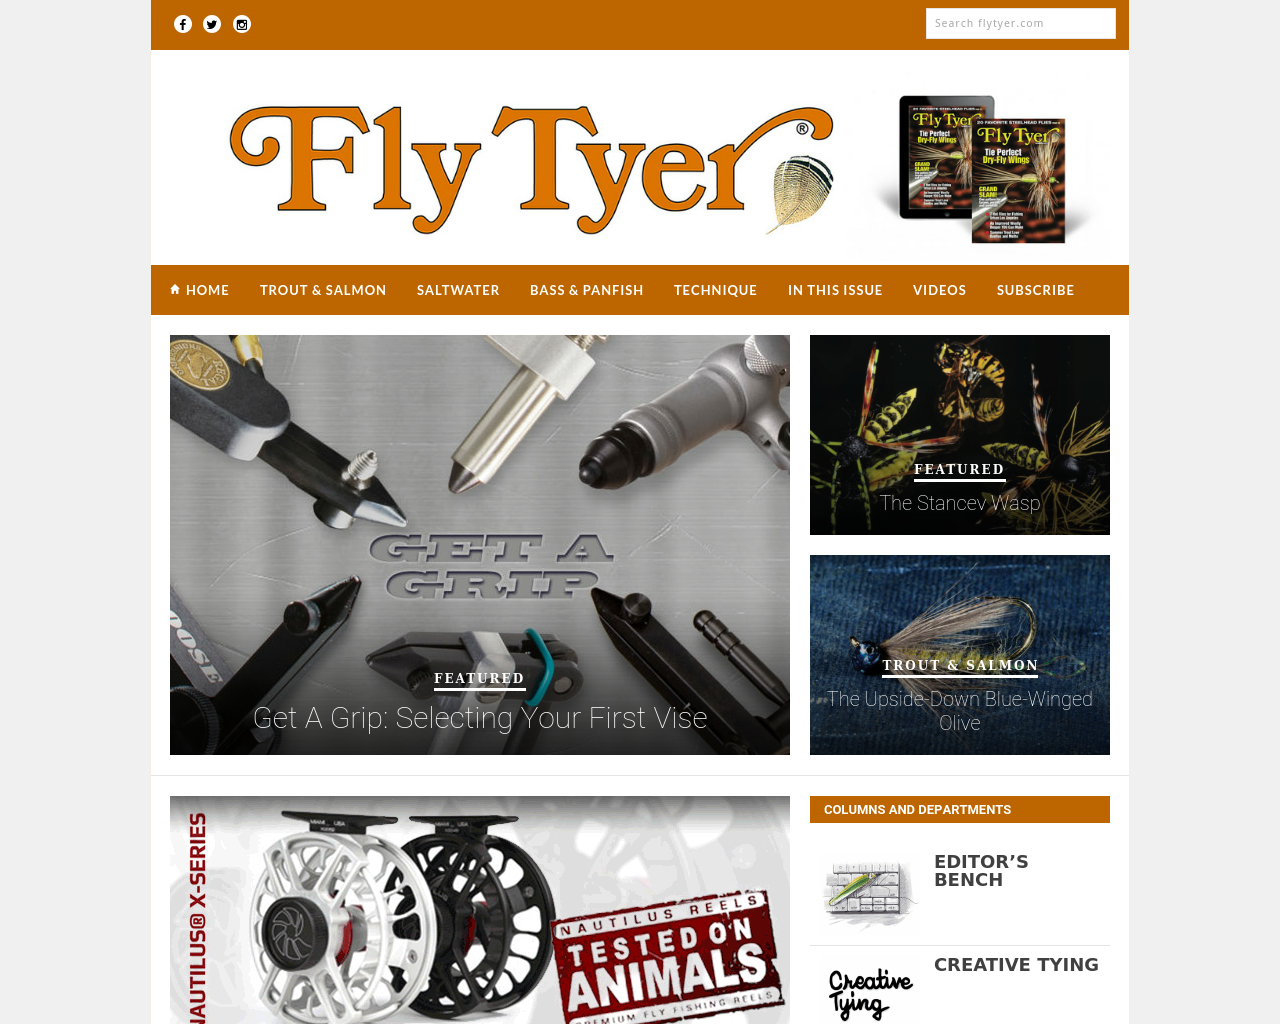 Flytyer.com-Advertising-Reviews-Pricing